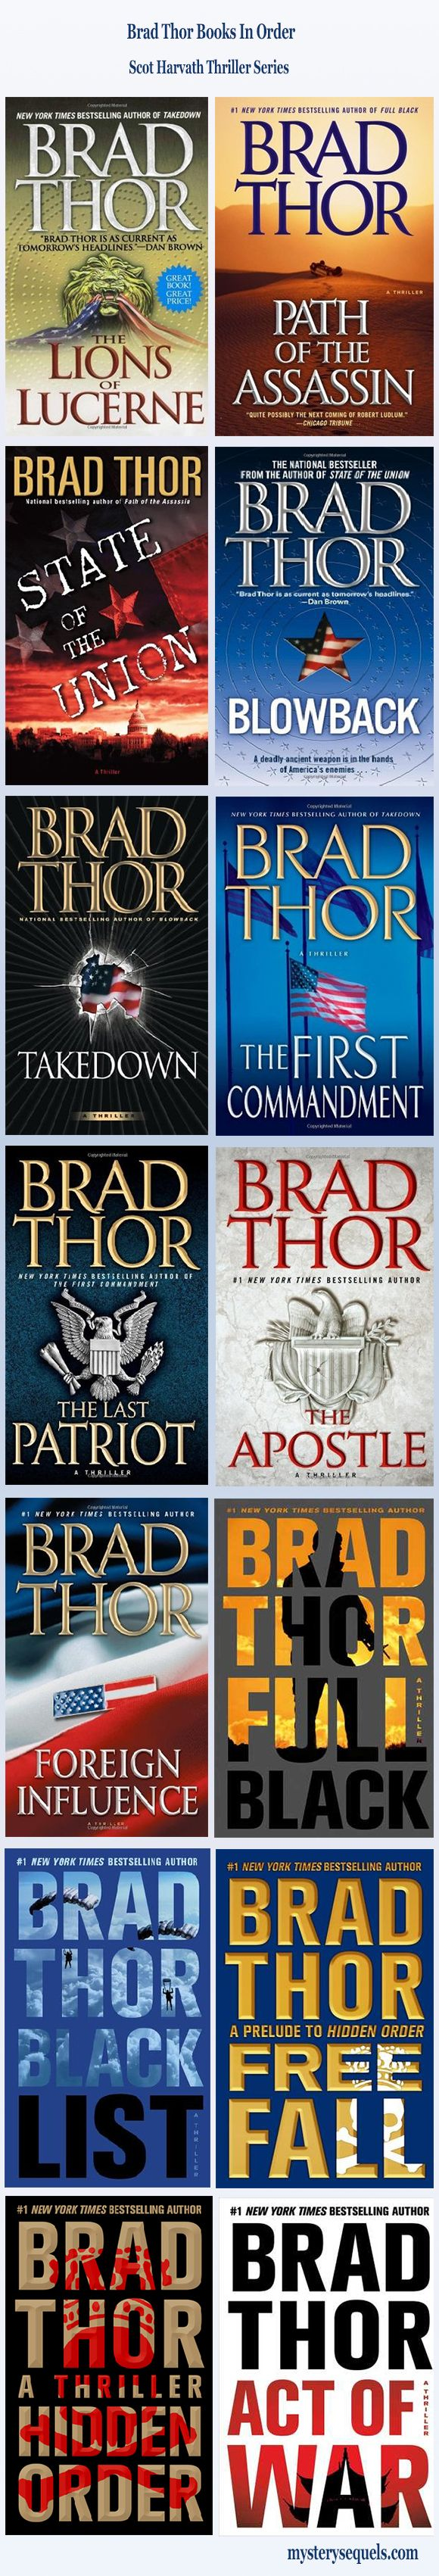 Brad Thor books with his Scot Harvath thriller series